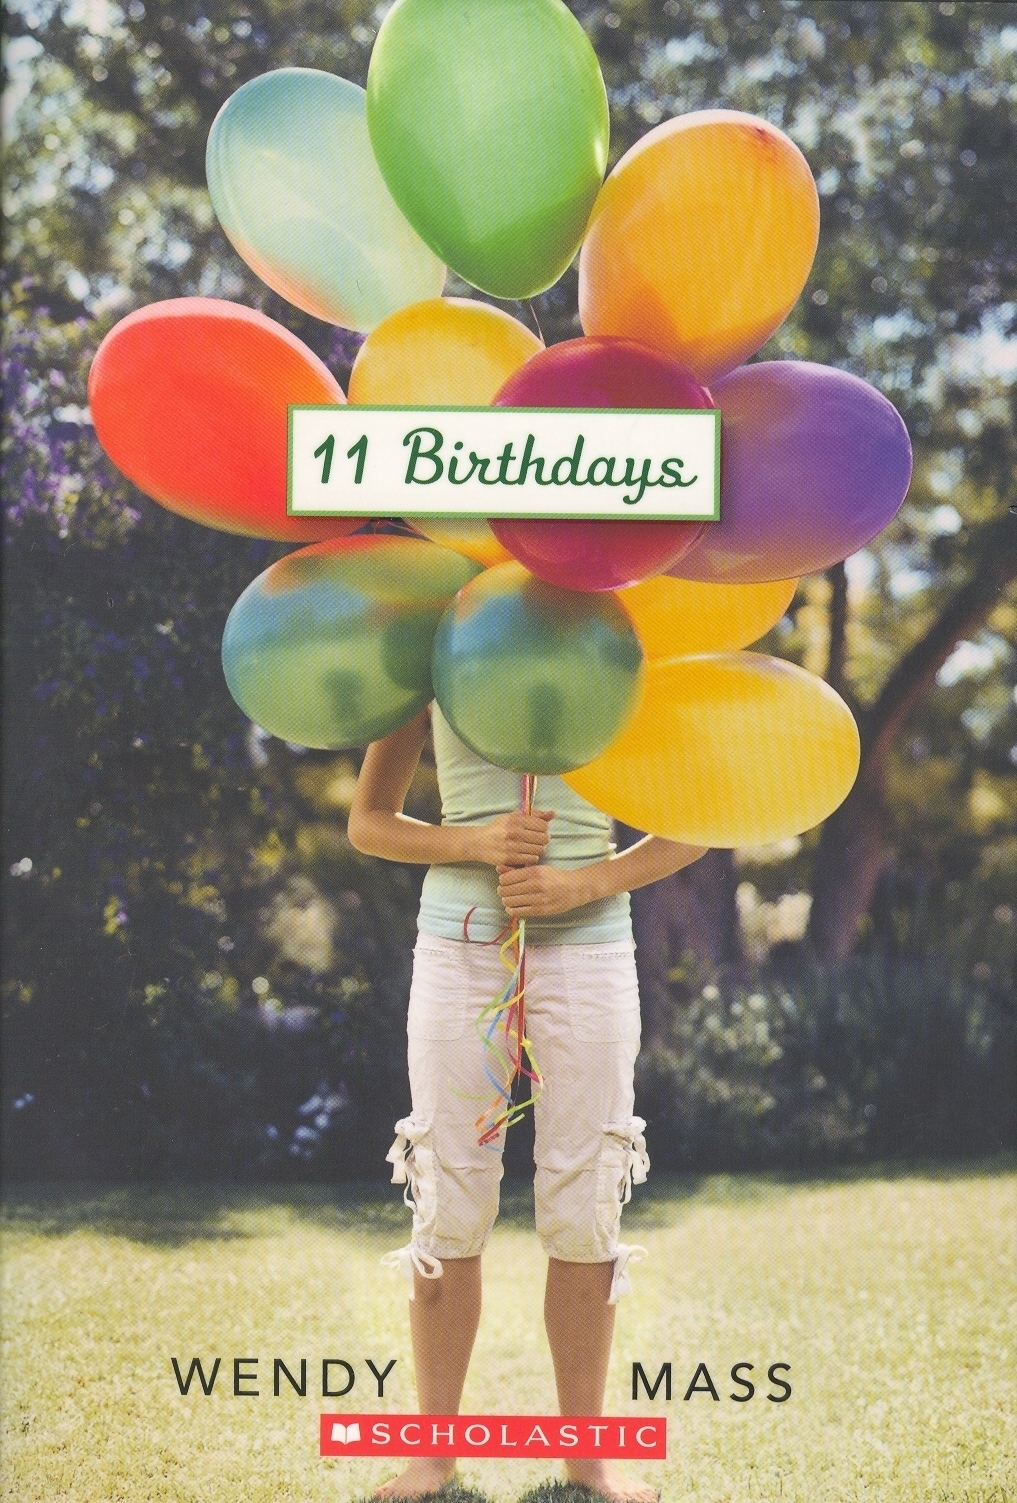 11 Birthdays